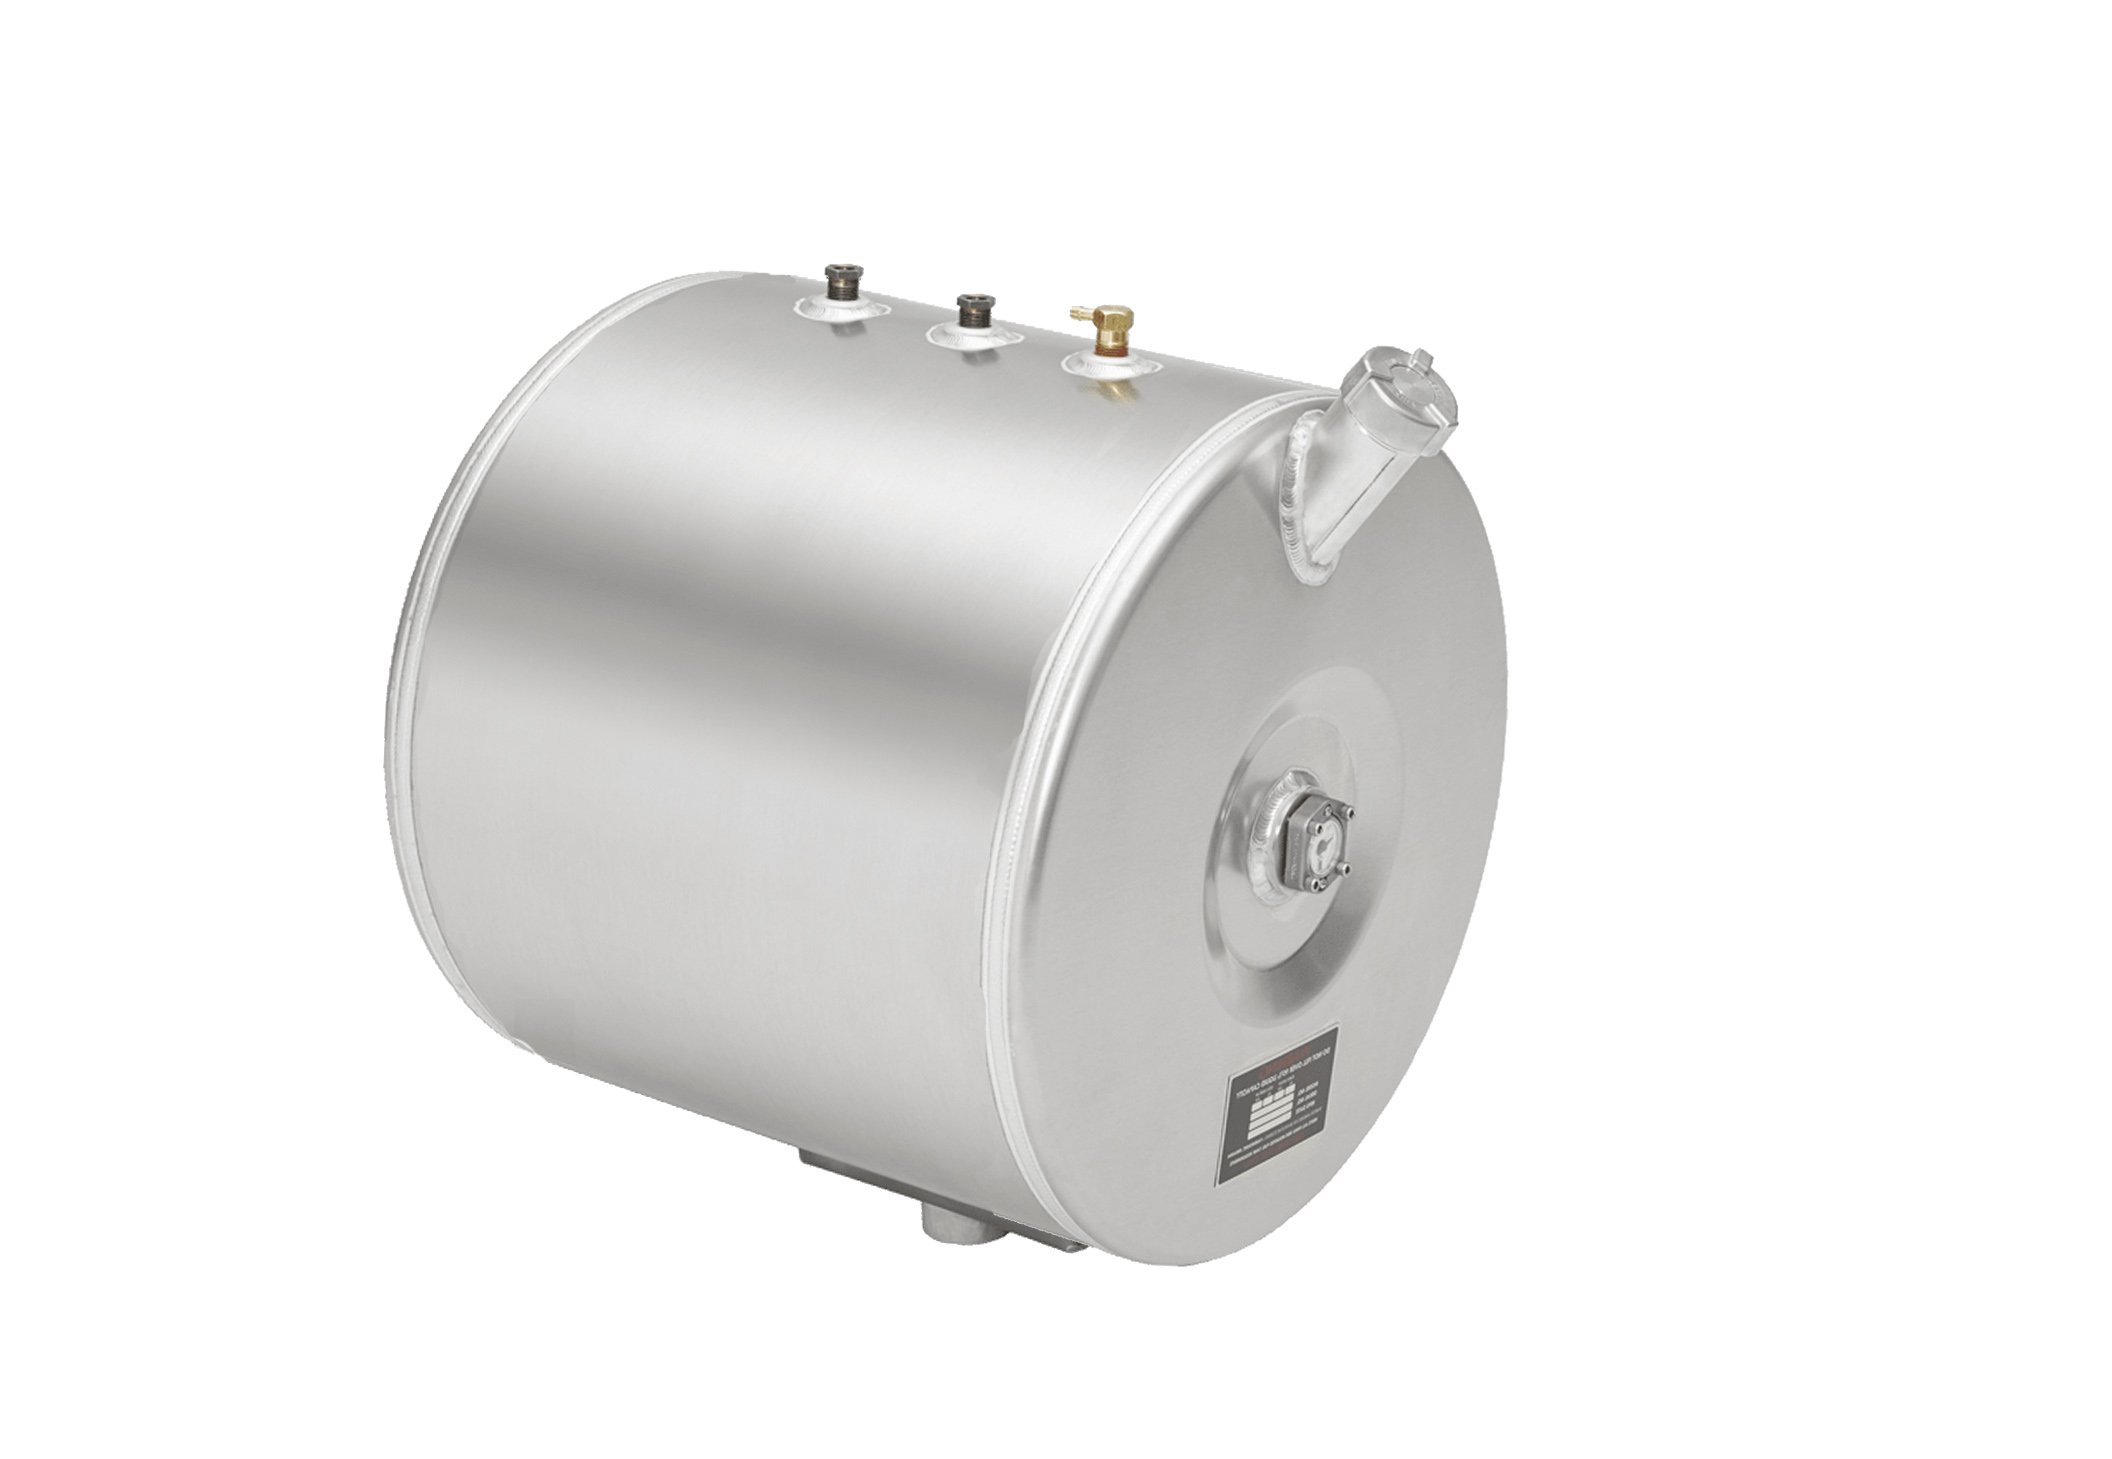 Aluminum Reefer Tank - 50 Gallon Reefer Tanks